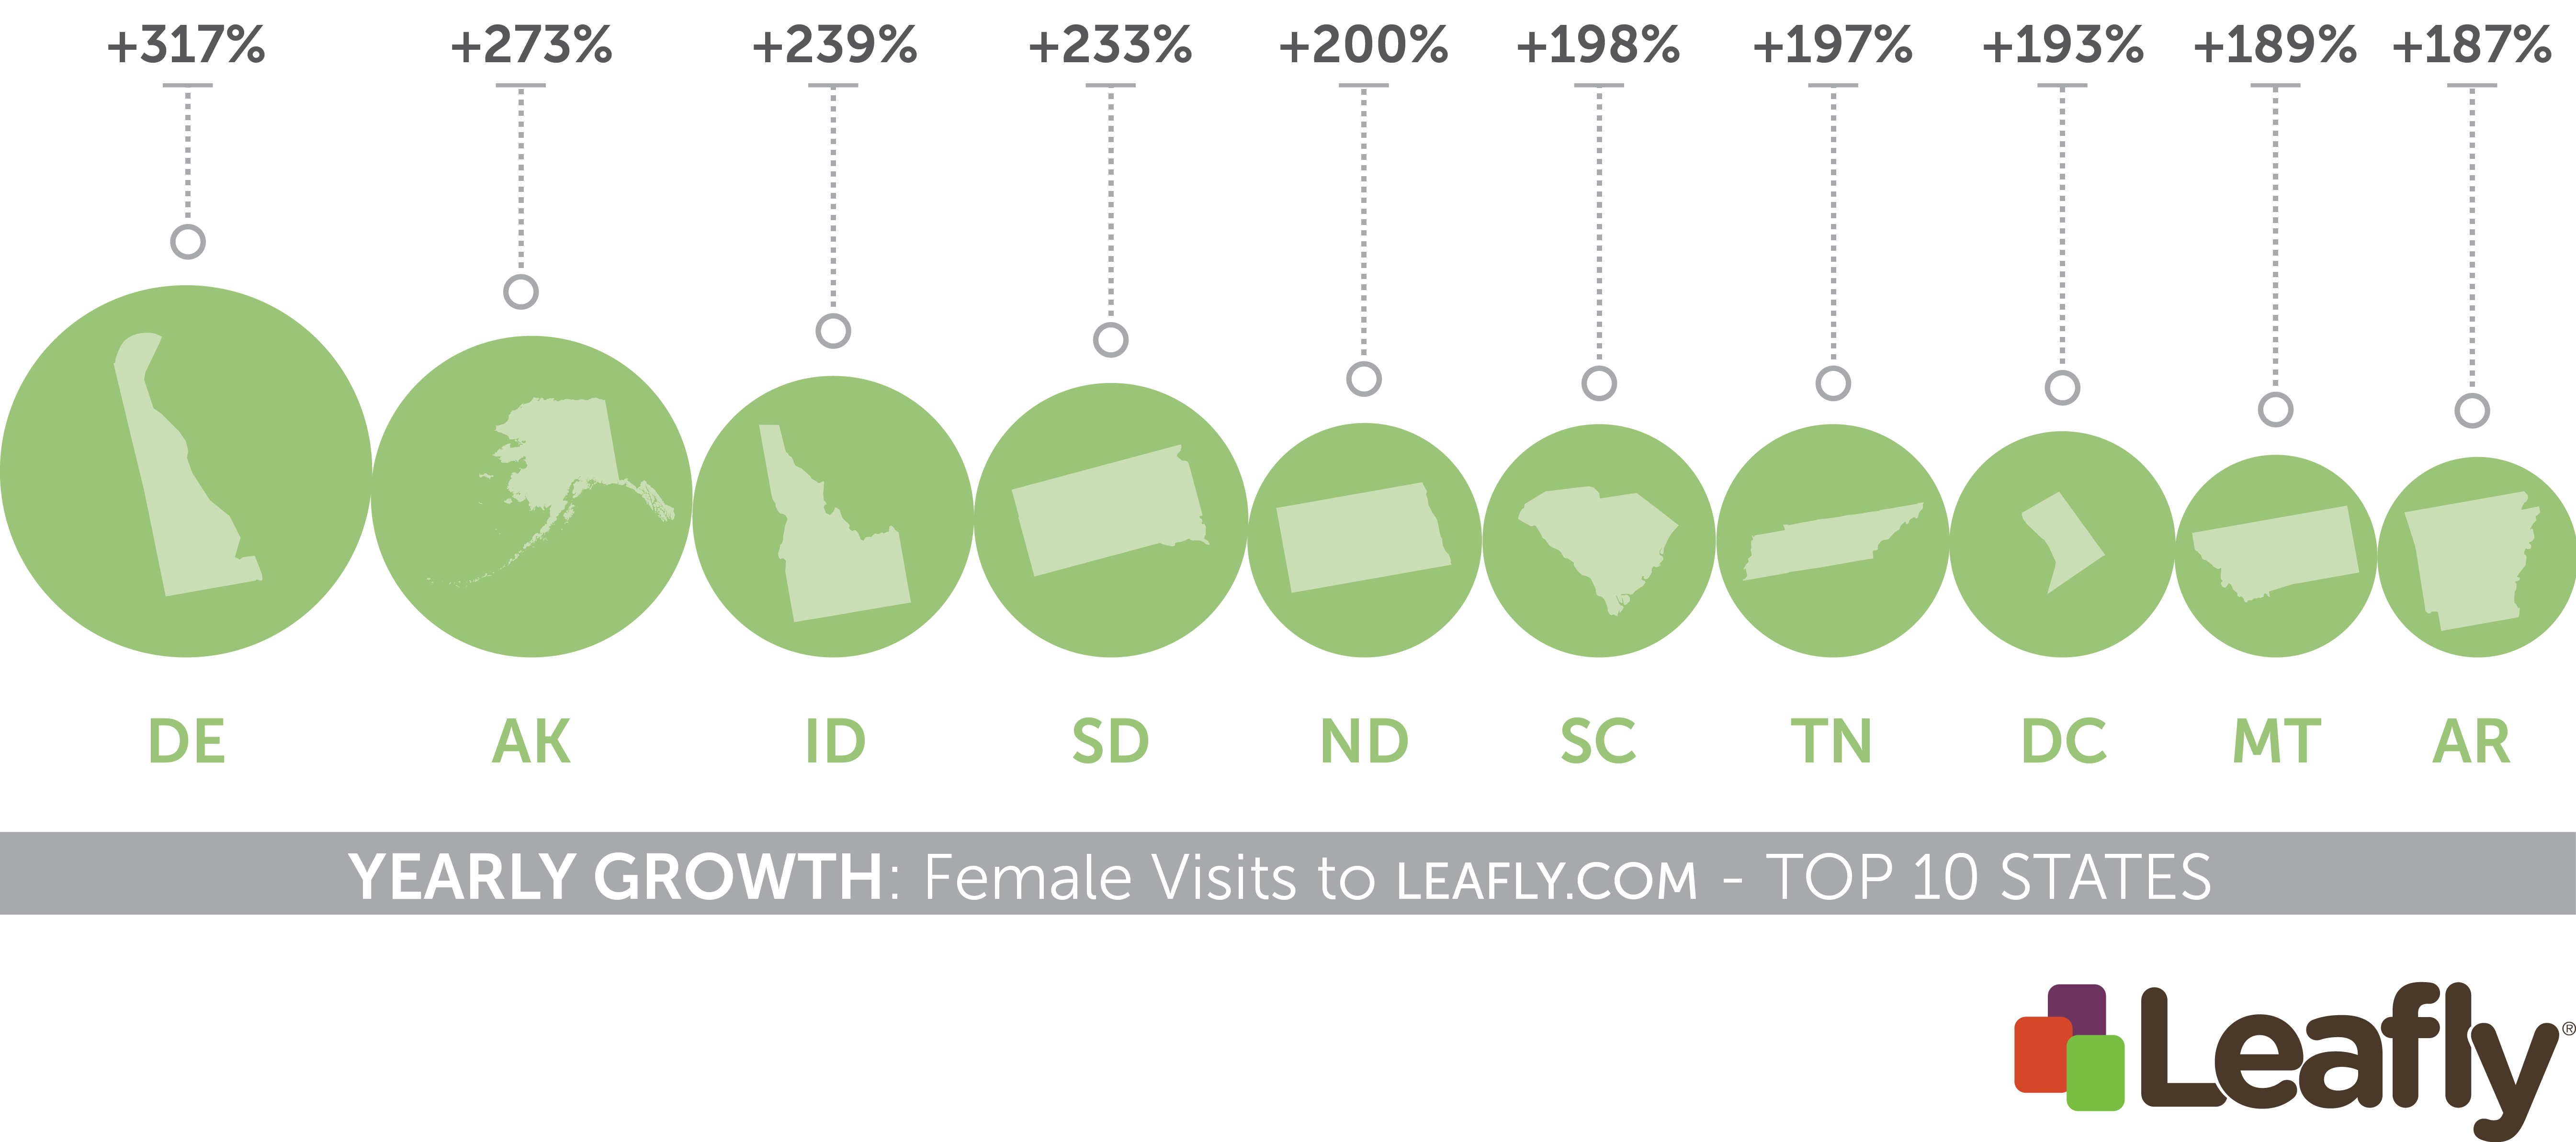 Top 10 states with the largest growth in female visits to Leafly.com